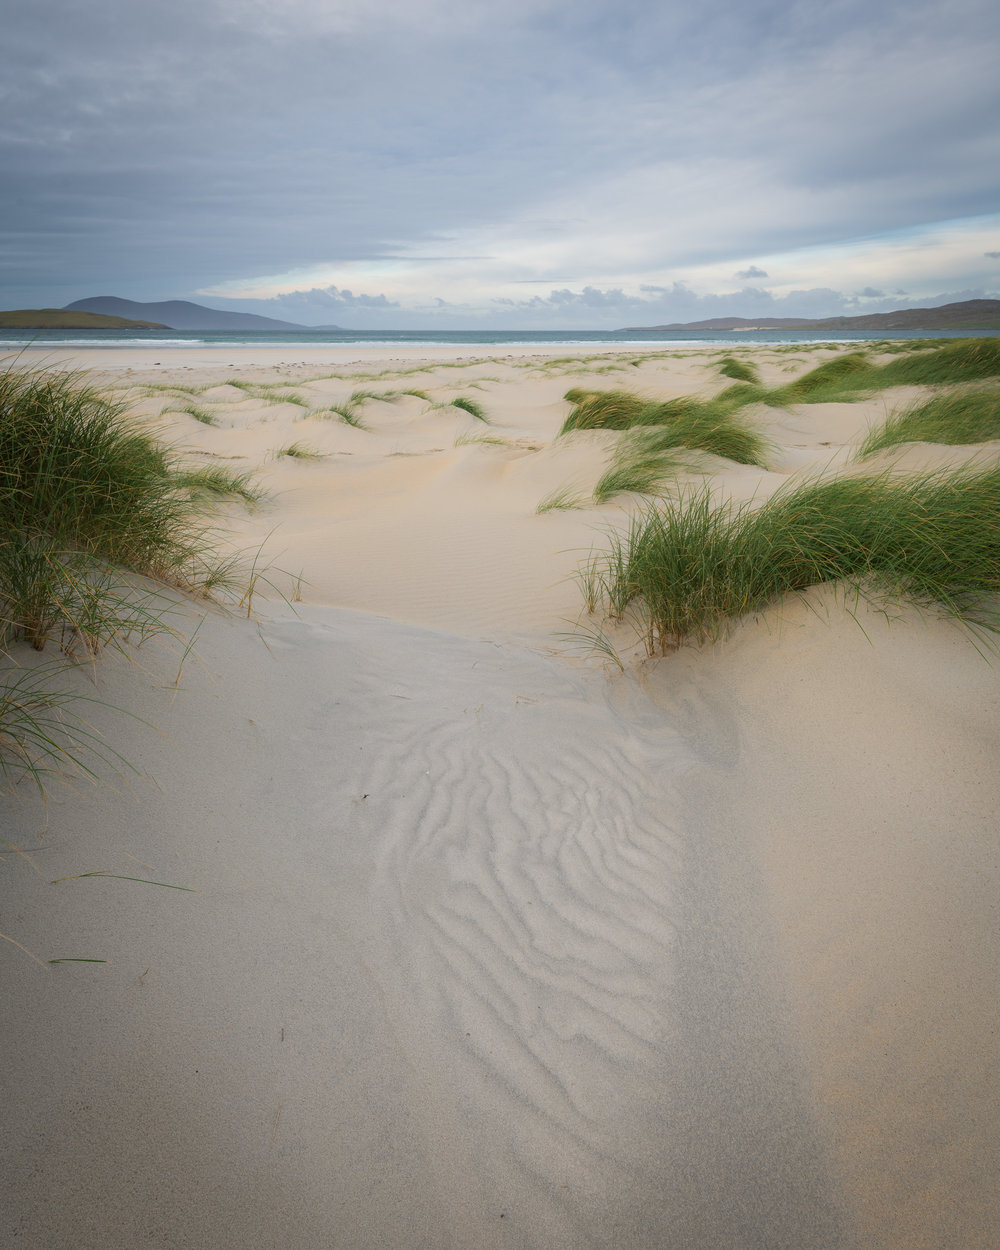 Dunes of Luskentyre Beach #2, Isle of Harris  - Nikon D850, Nikkor 16-35 mm f/4 at 20 mm, f/13, 1/5th second at ISO 64, Lee Filters Circular Polariser and ND Grad.